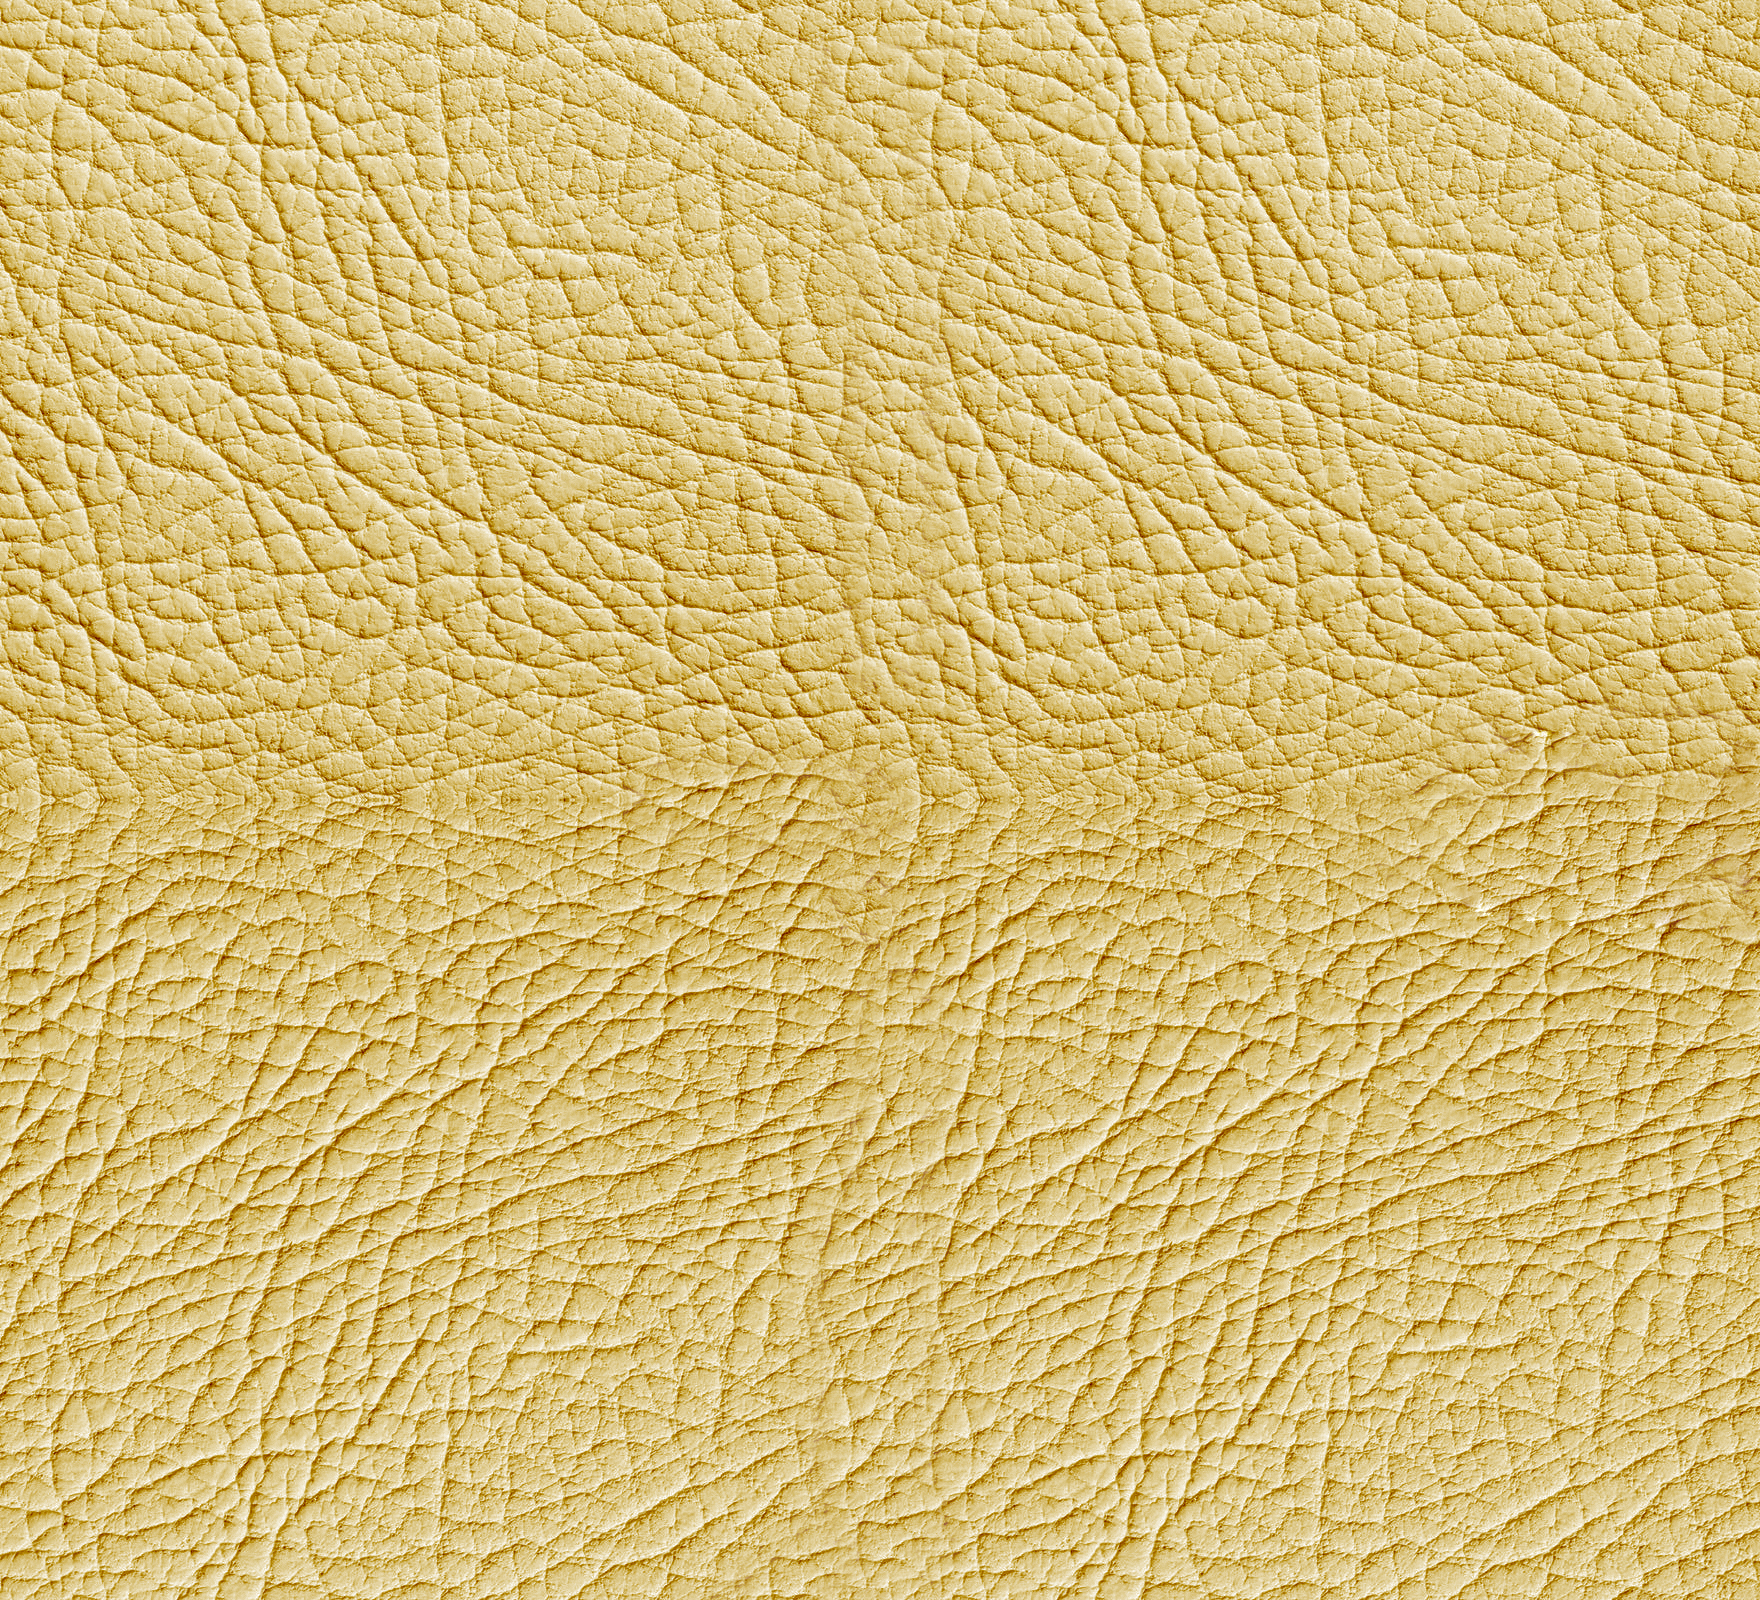 free-high-quality-leather-textures